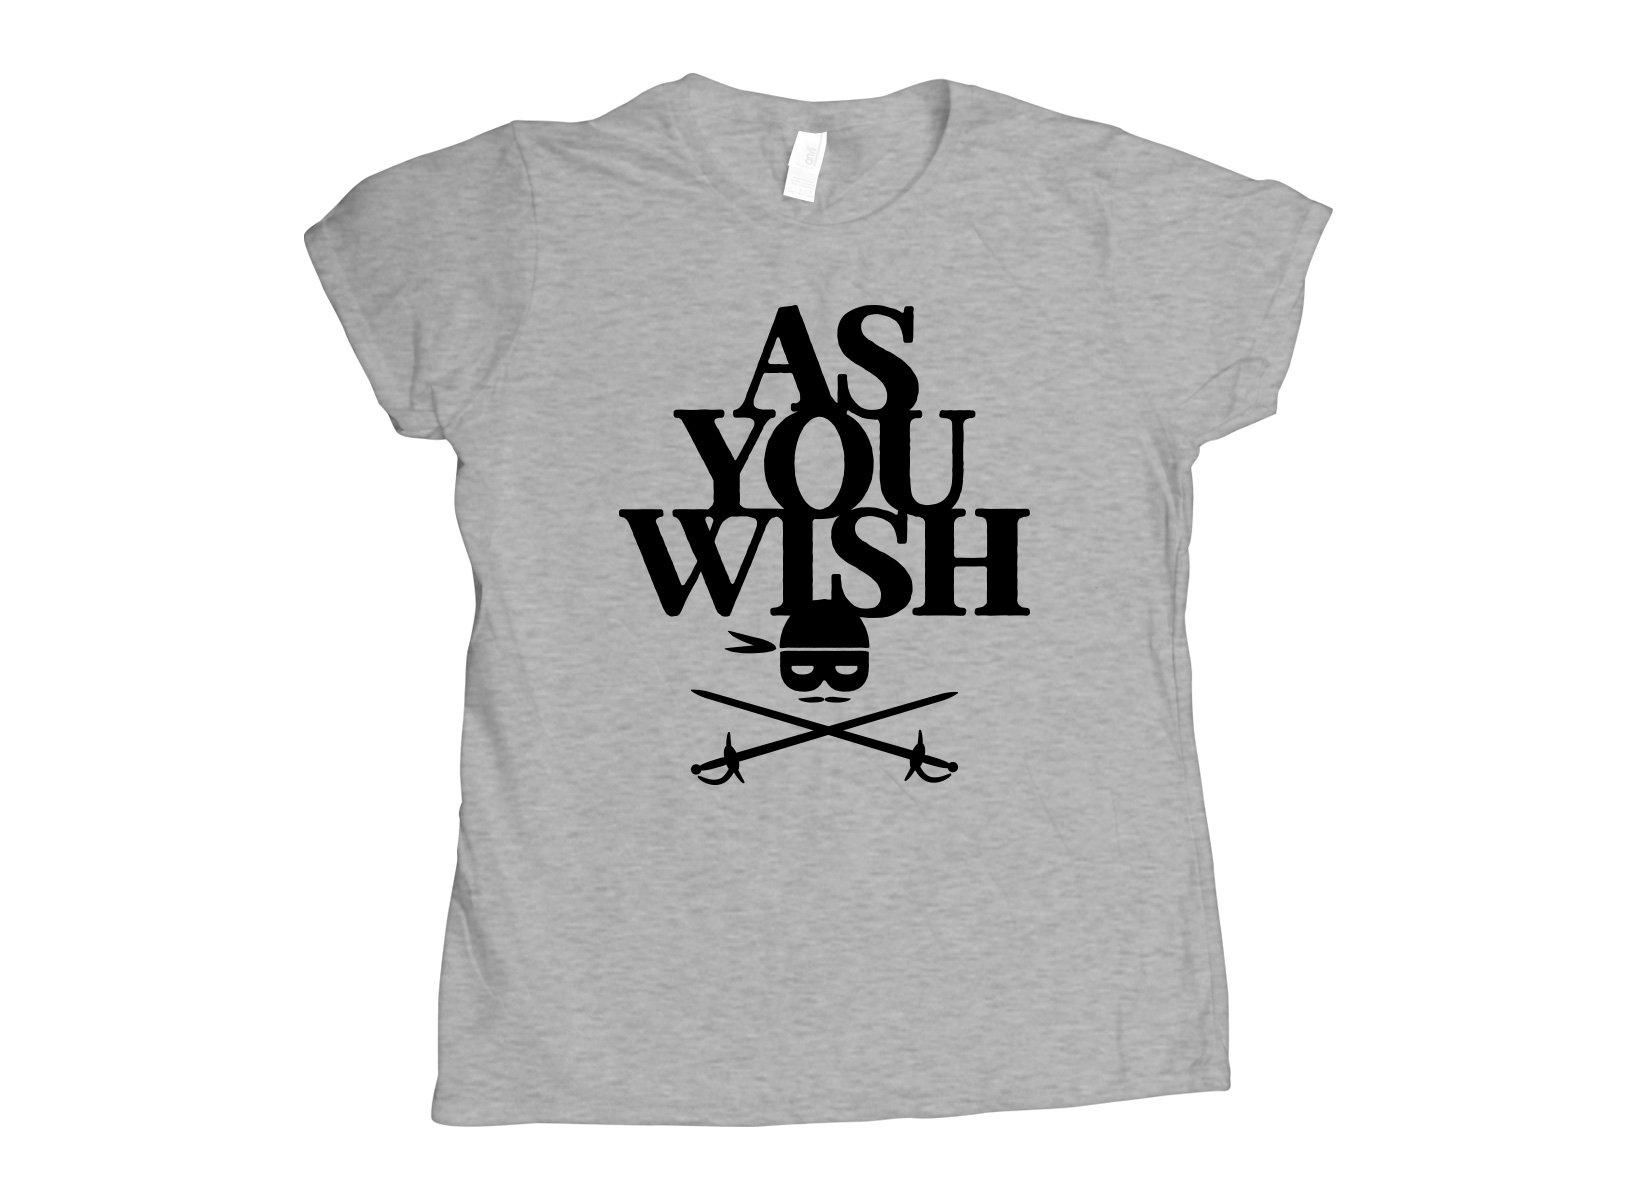 As You Wish on Womens T-Shirt